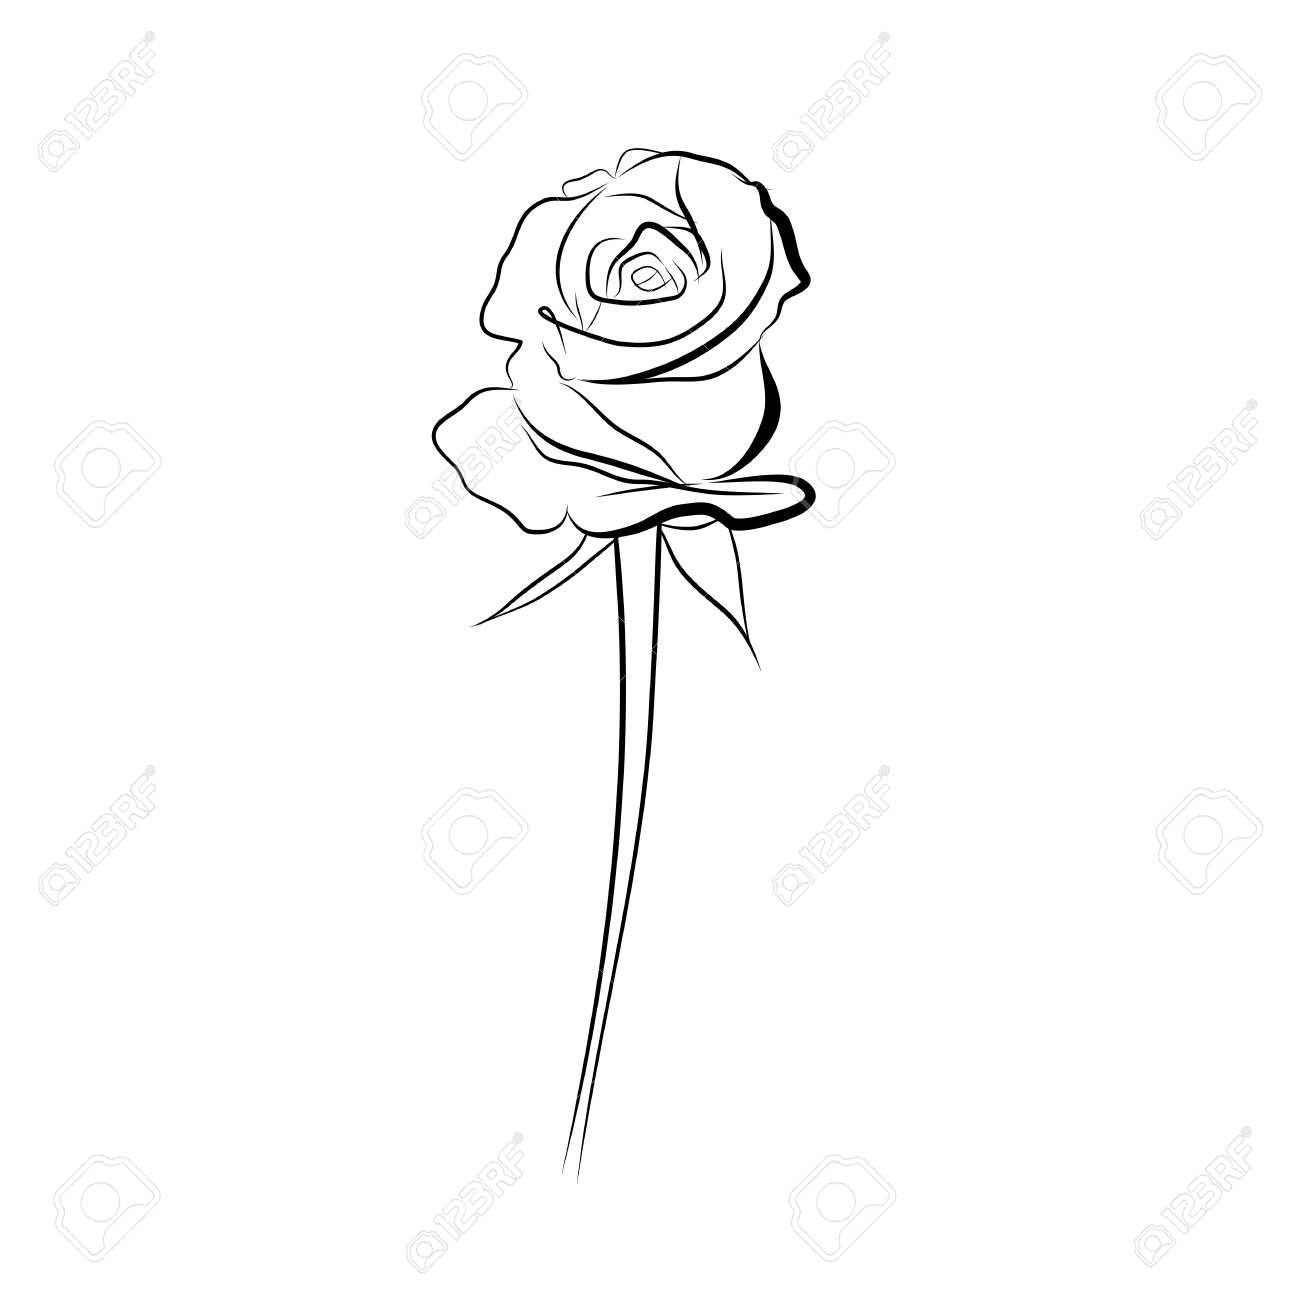 1300x1300 Sketch Line Drawing Of Rose Isolated Illustration On White